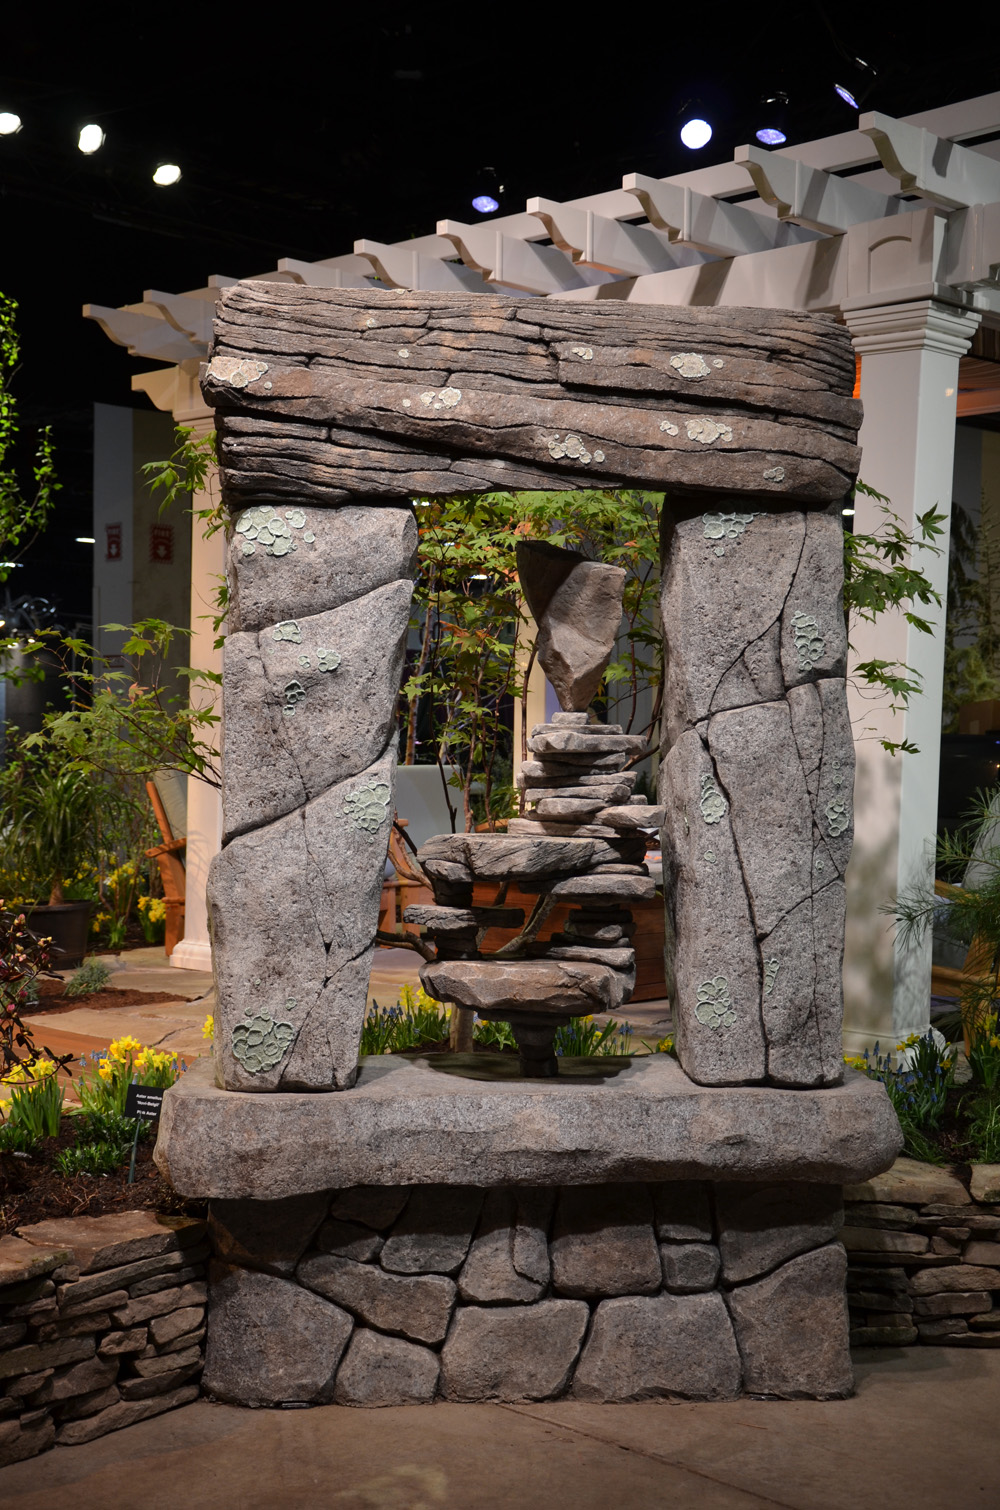 Boston Flower Show_Rock Sculpture